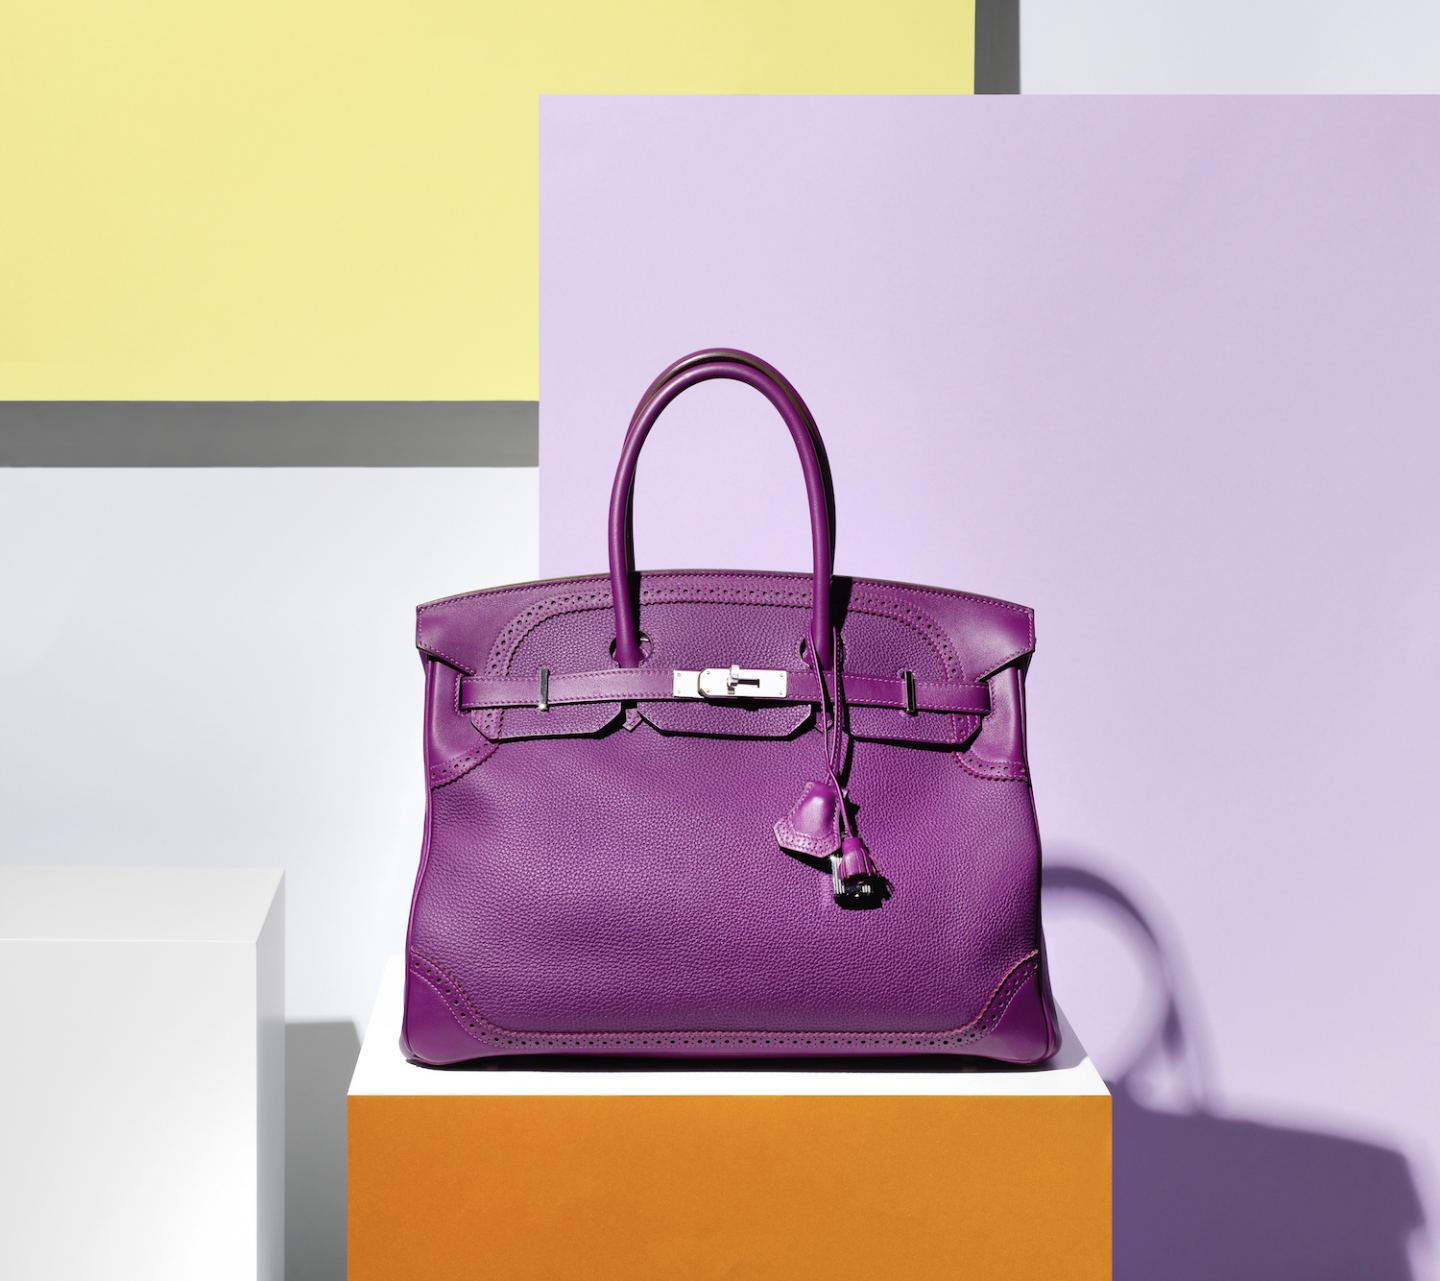 hermes purple birkin kelly bag handbag bonhams auctions